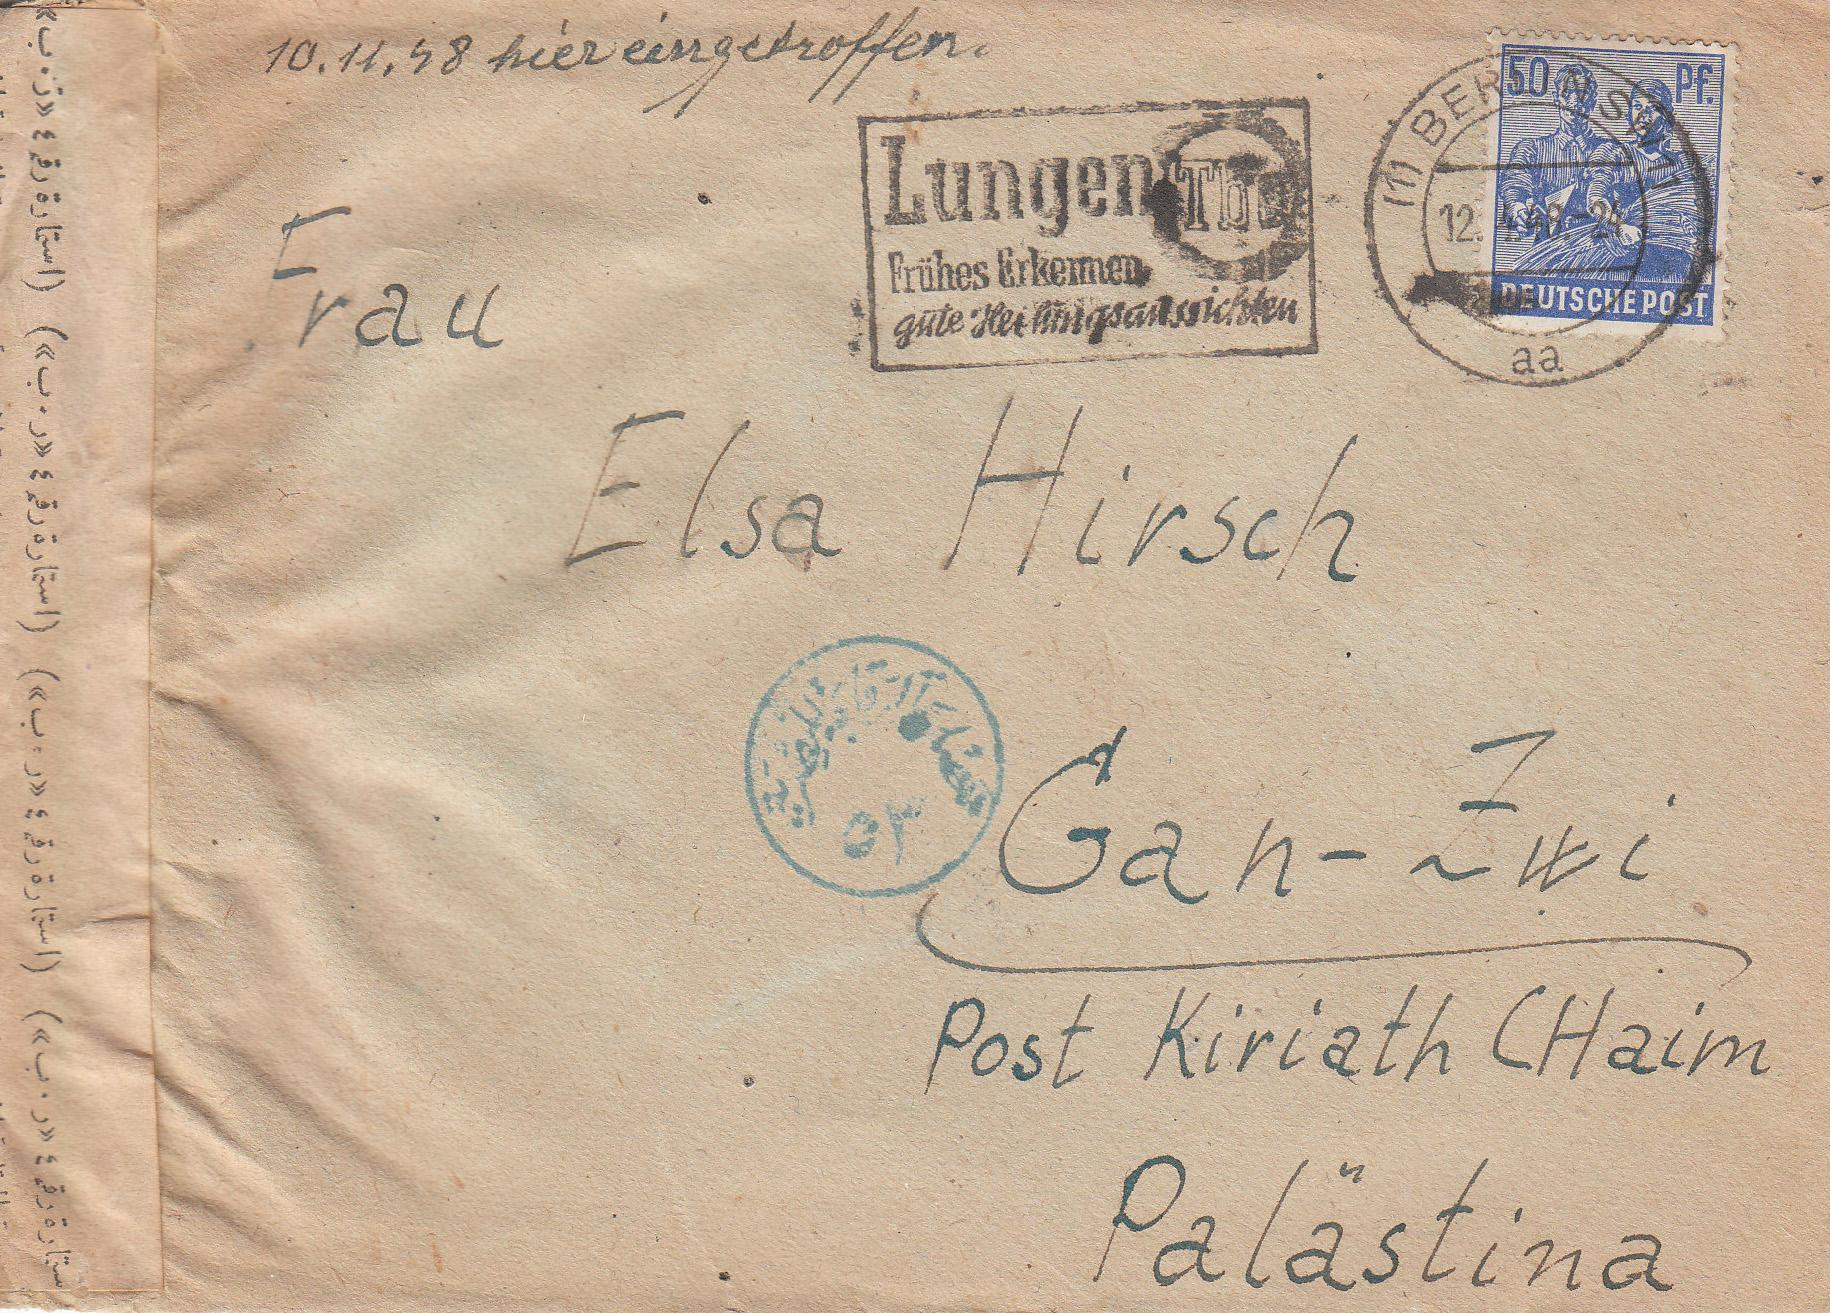 1948 Egyptian seizure of mail to Israel: 12-4-1948 surface mailed cover from WEST BERLIN to GAN ZVI (scarce destination), franked 50Pf & tied by local machine cancel: this mailed 6